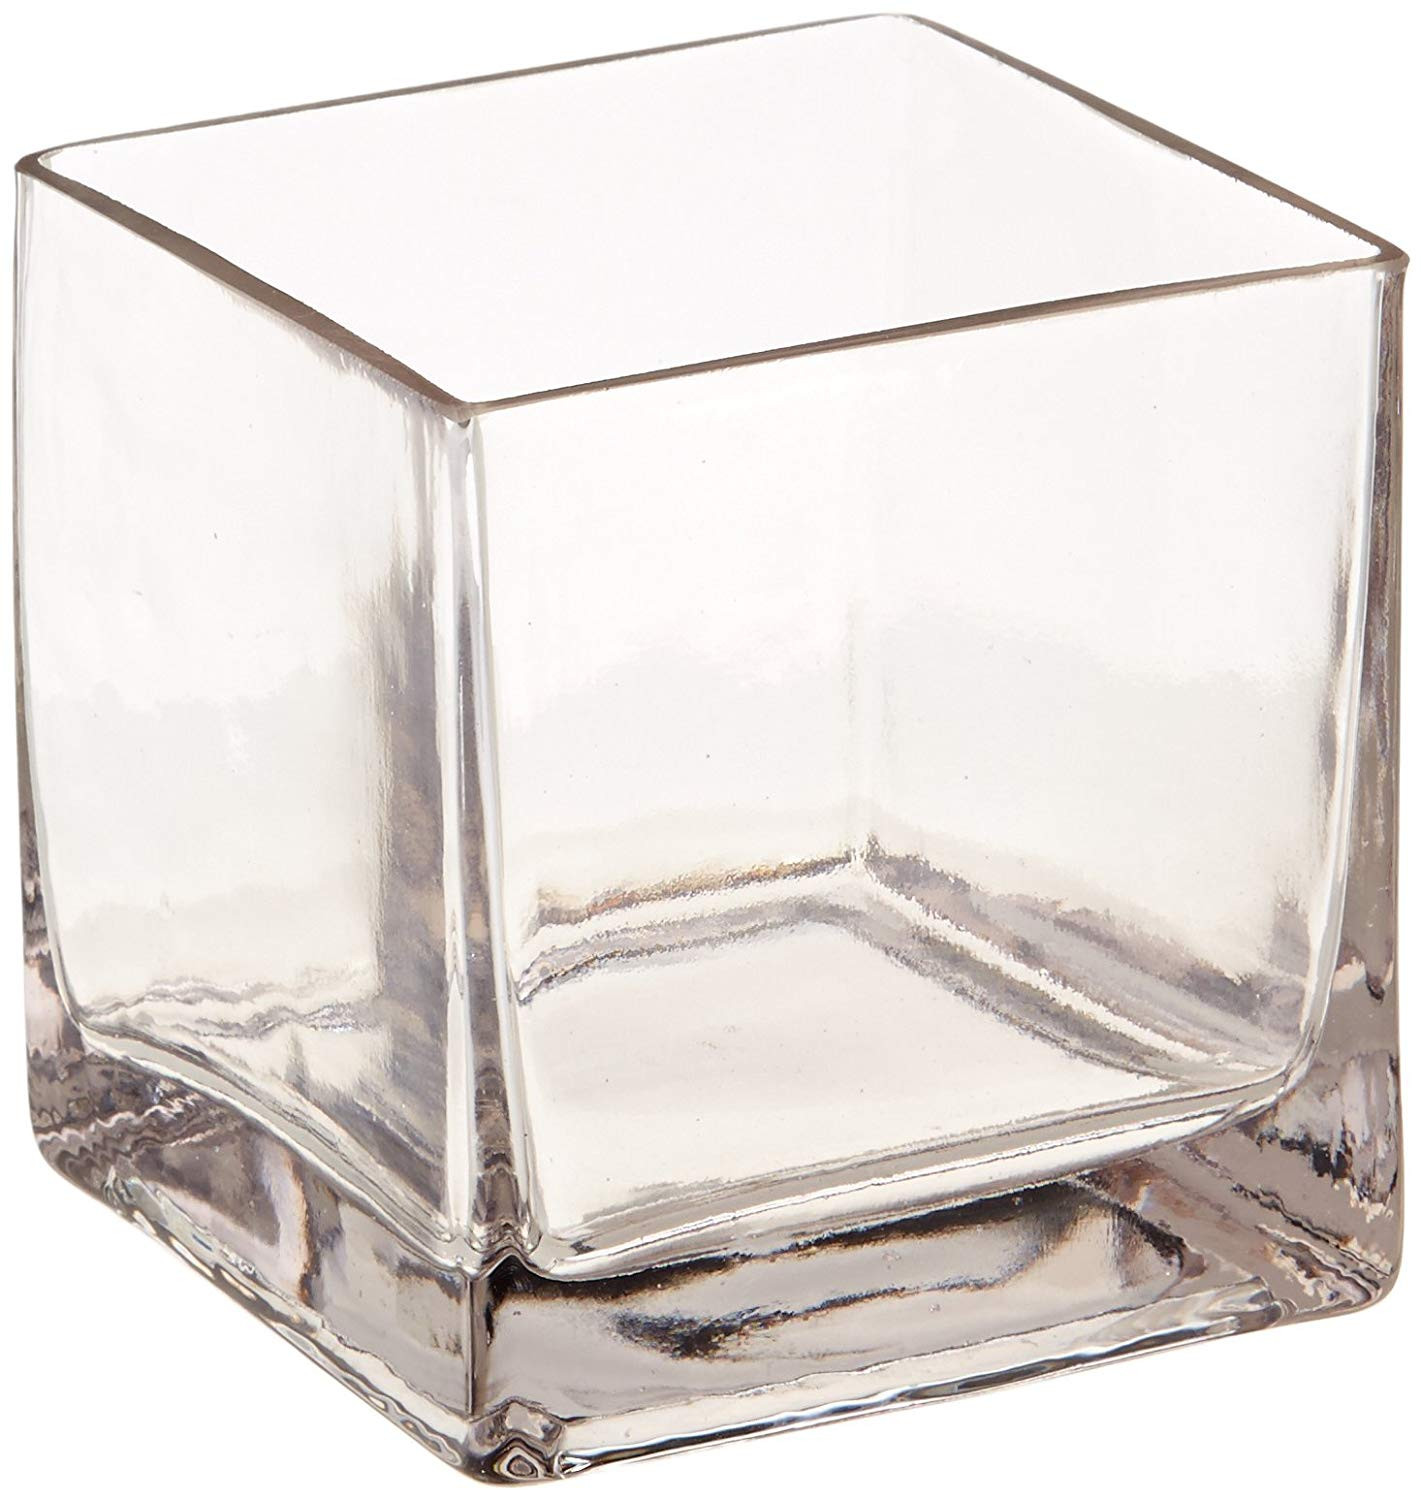 big clear glass vase of amazon com 12piece 4 square crystal clear glass vase home kitchen for 71 jezfmvnl sl1500